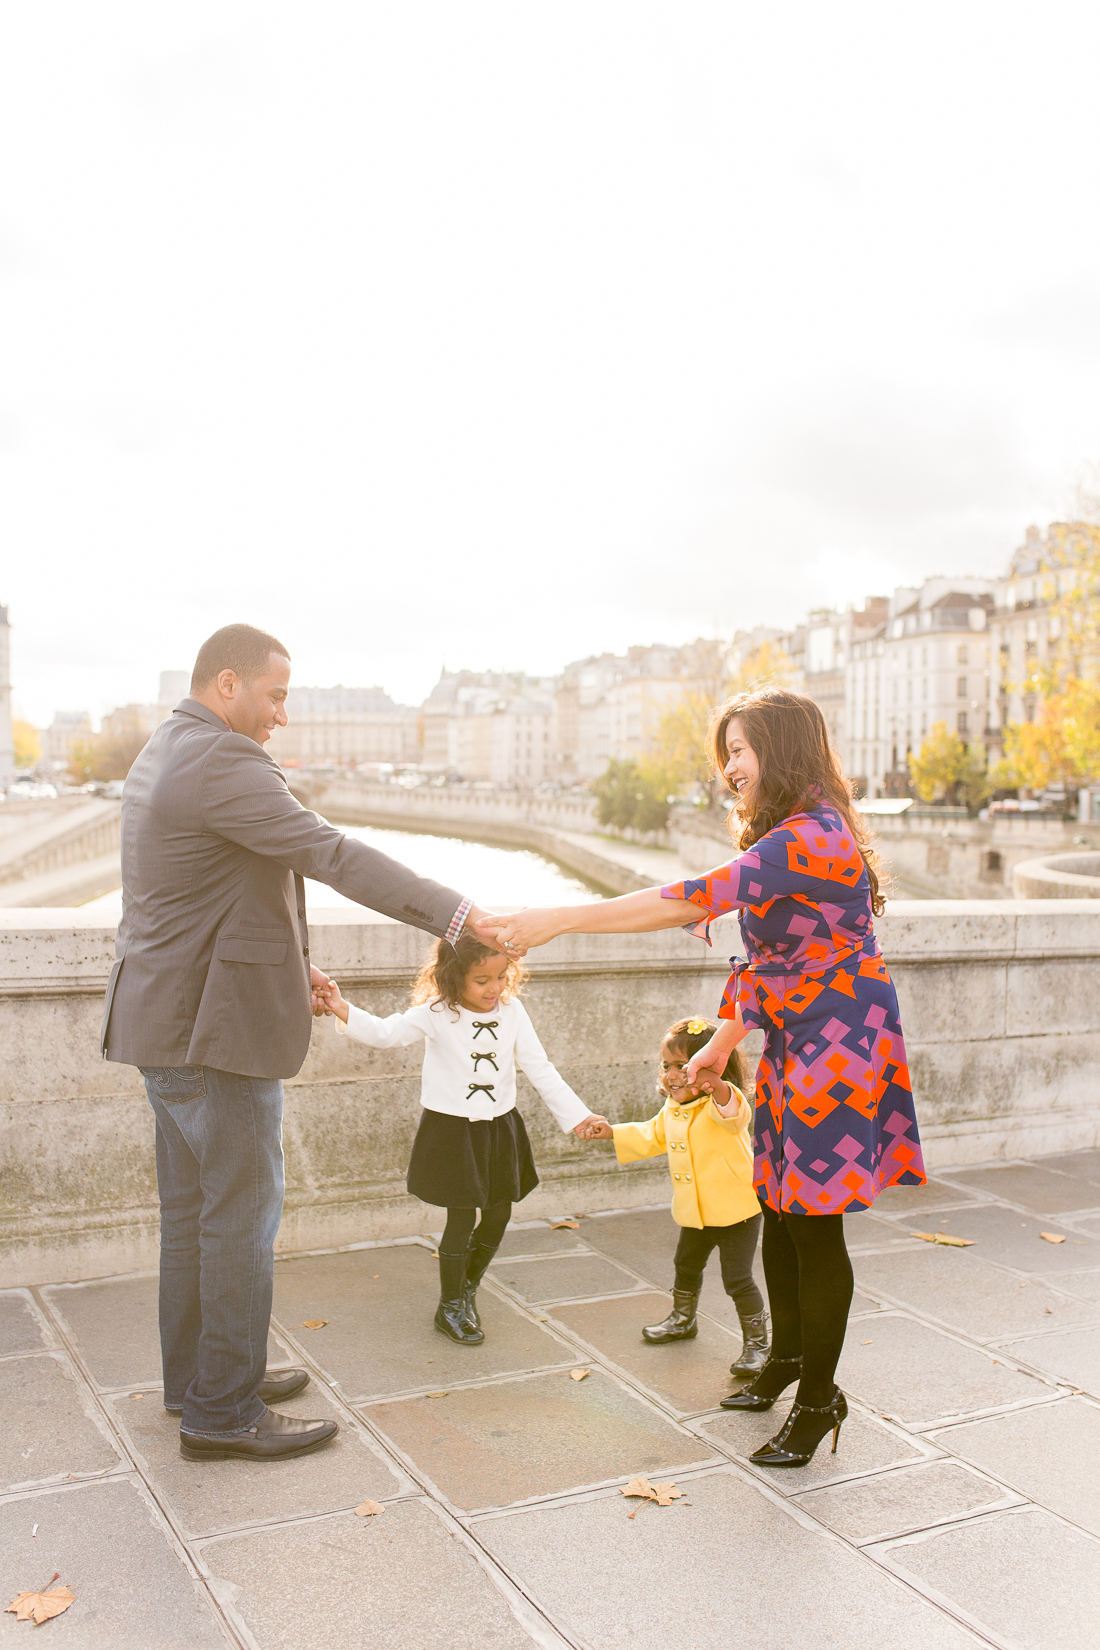 spring-fall-family-paris-eiffel-tower-photo-session-outfit-inspiratn-21